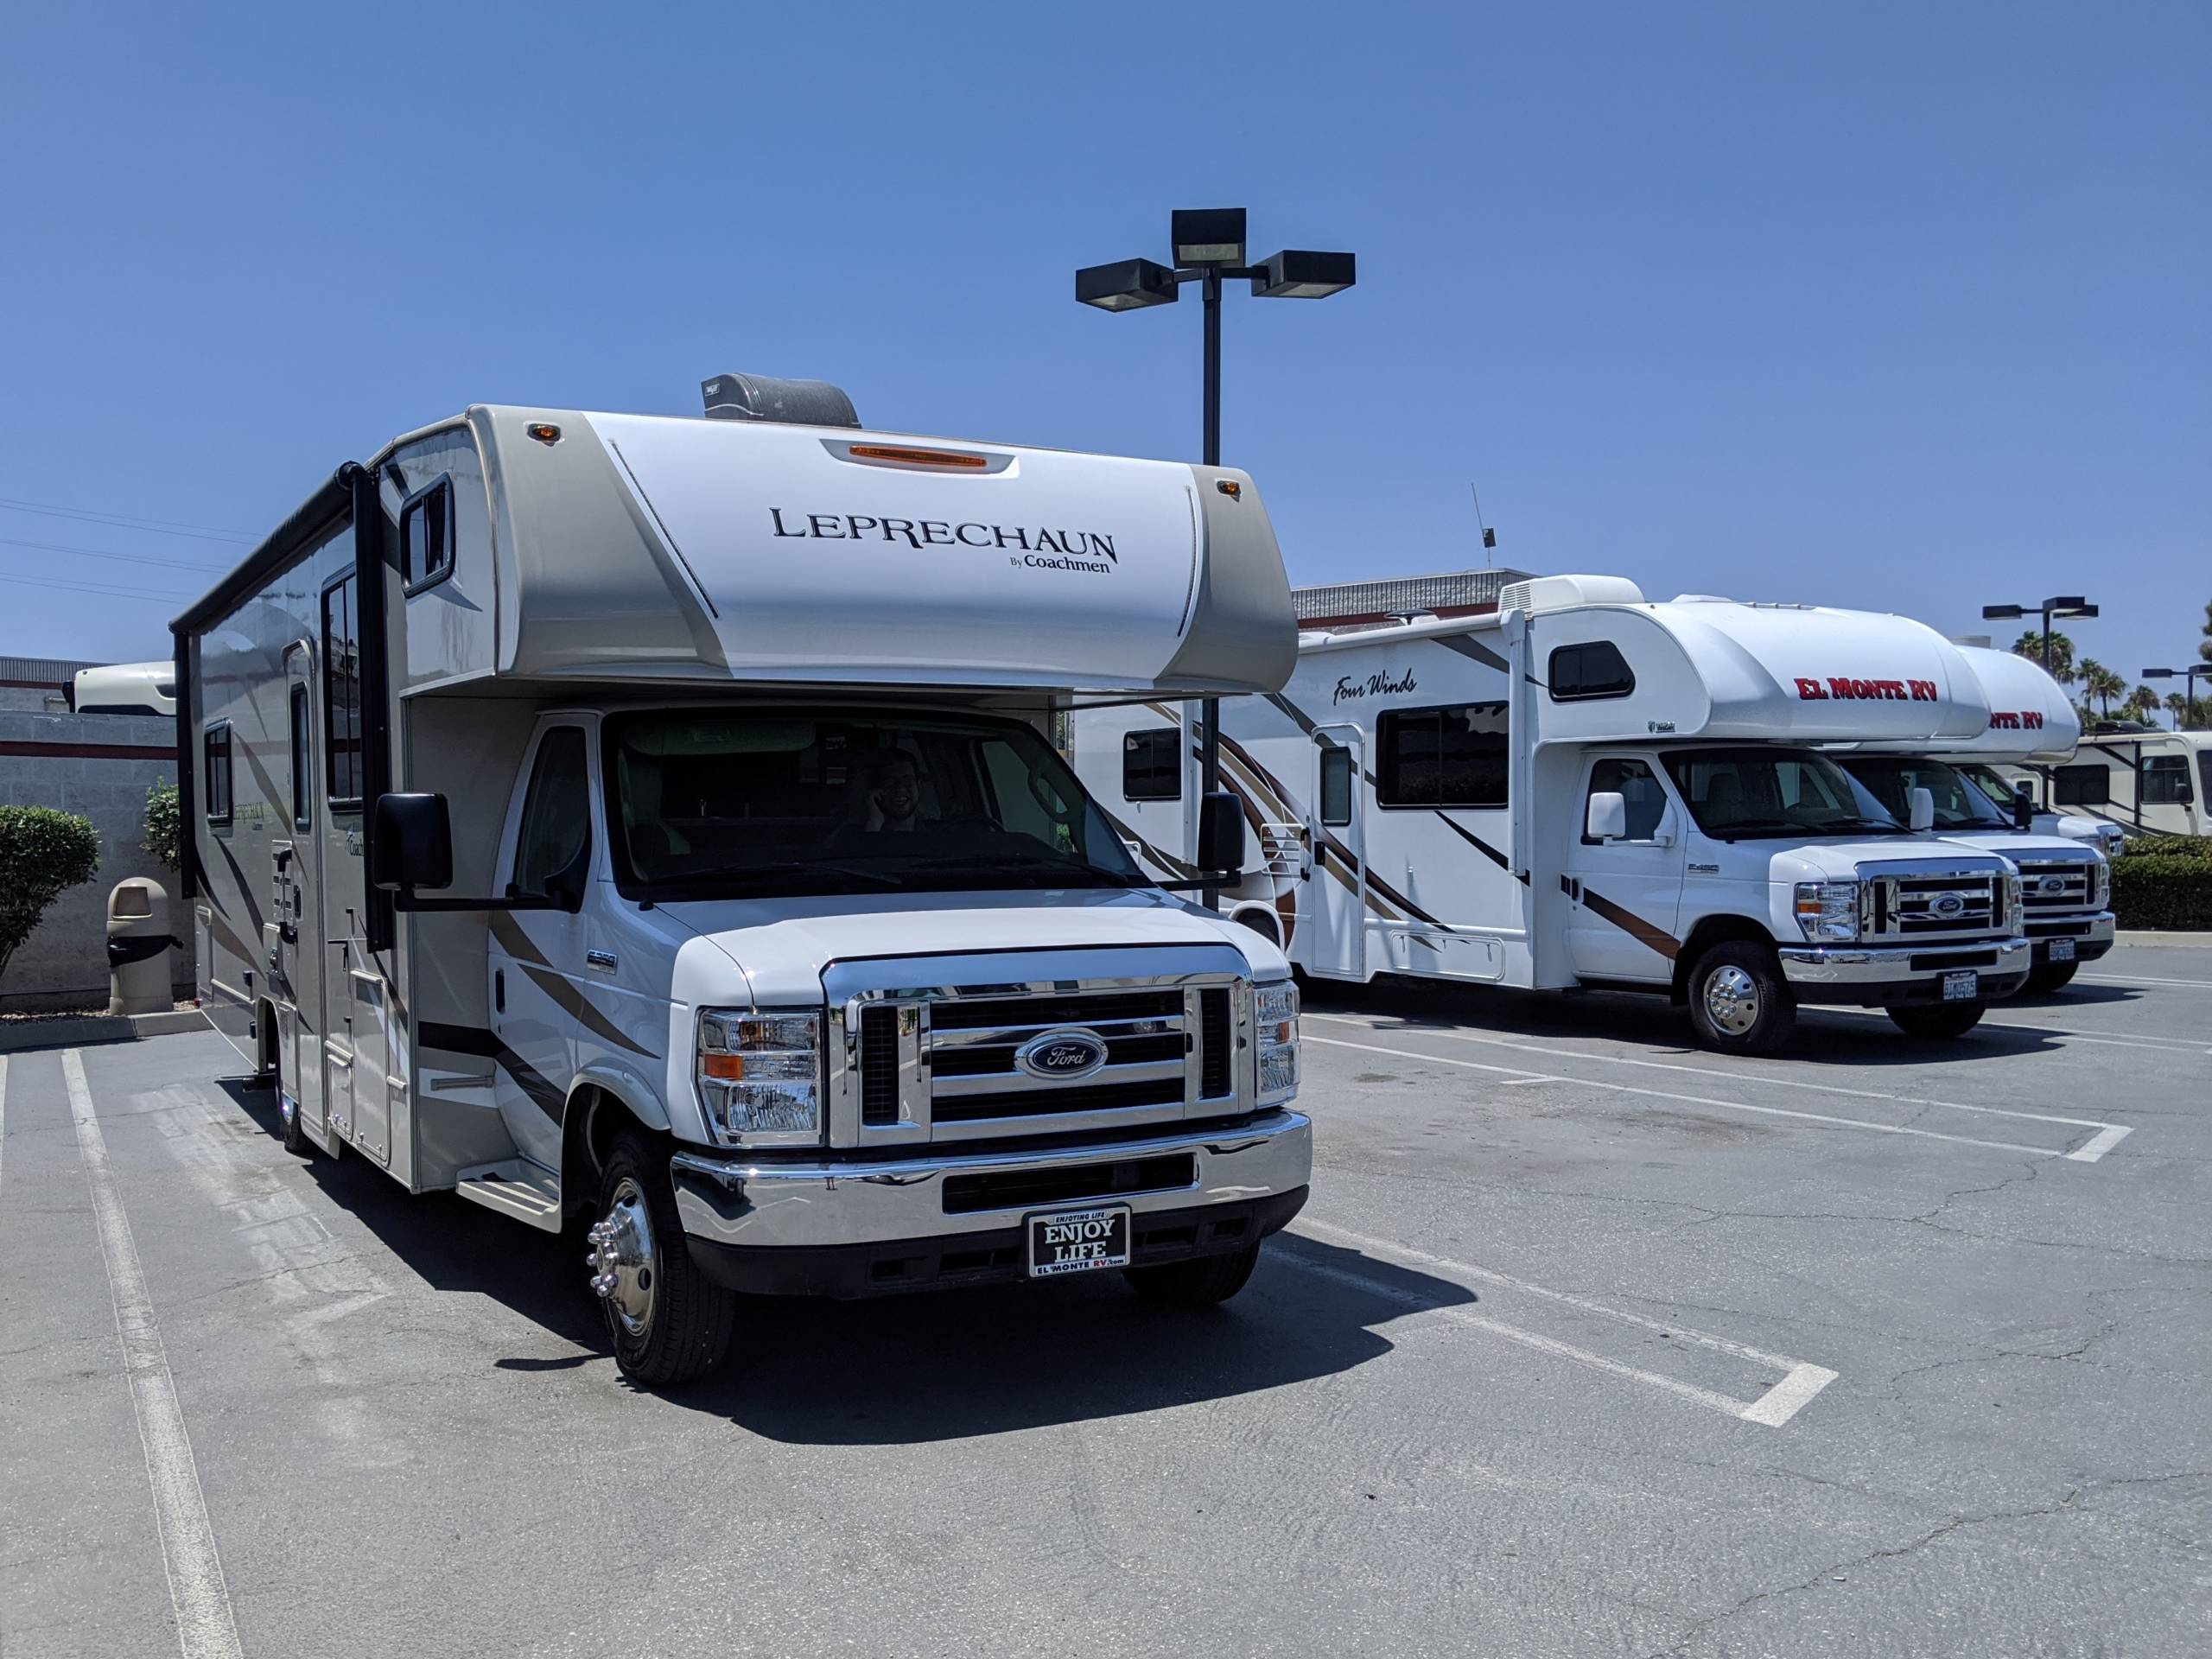 The 5 things first-time RV renters should know, according to the CEO of RVshare